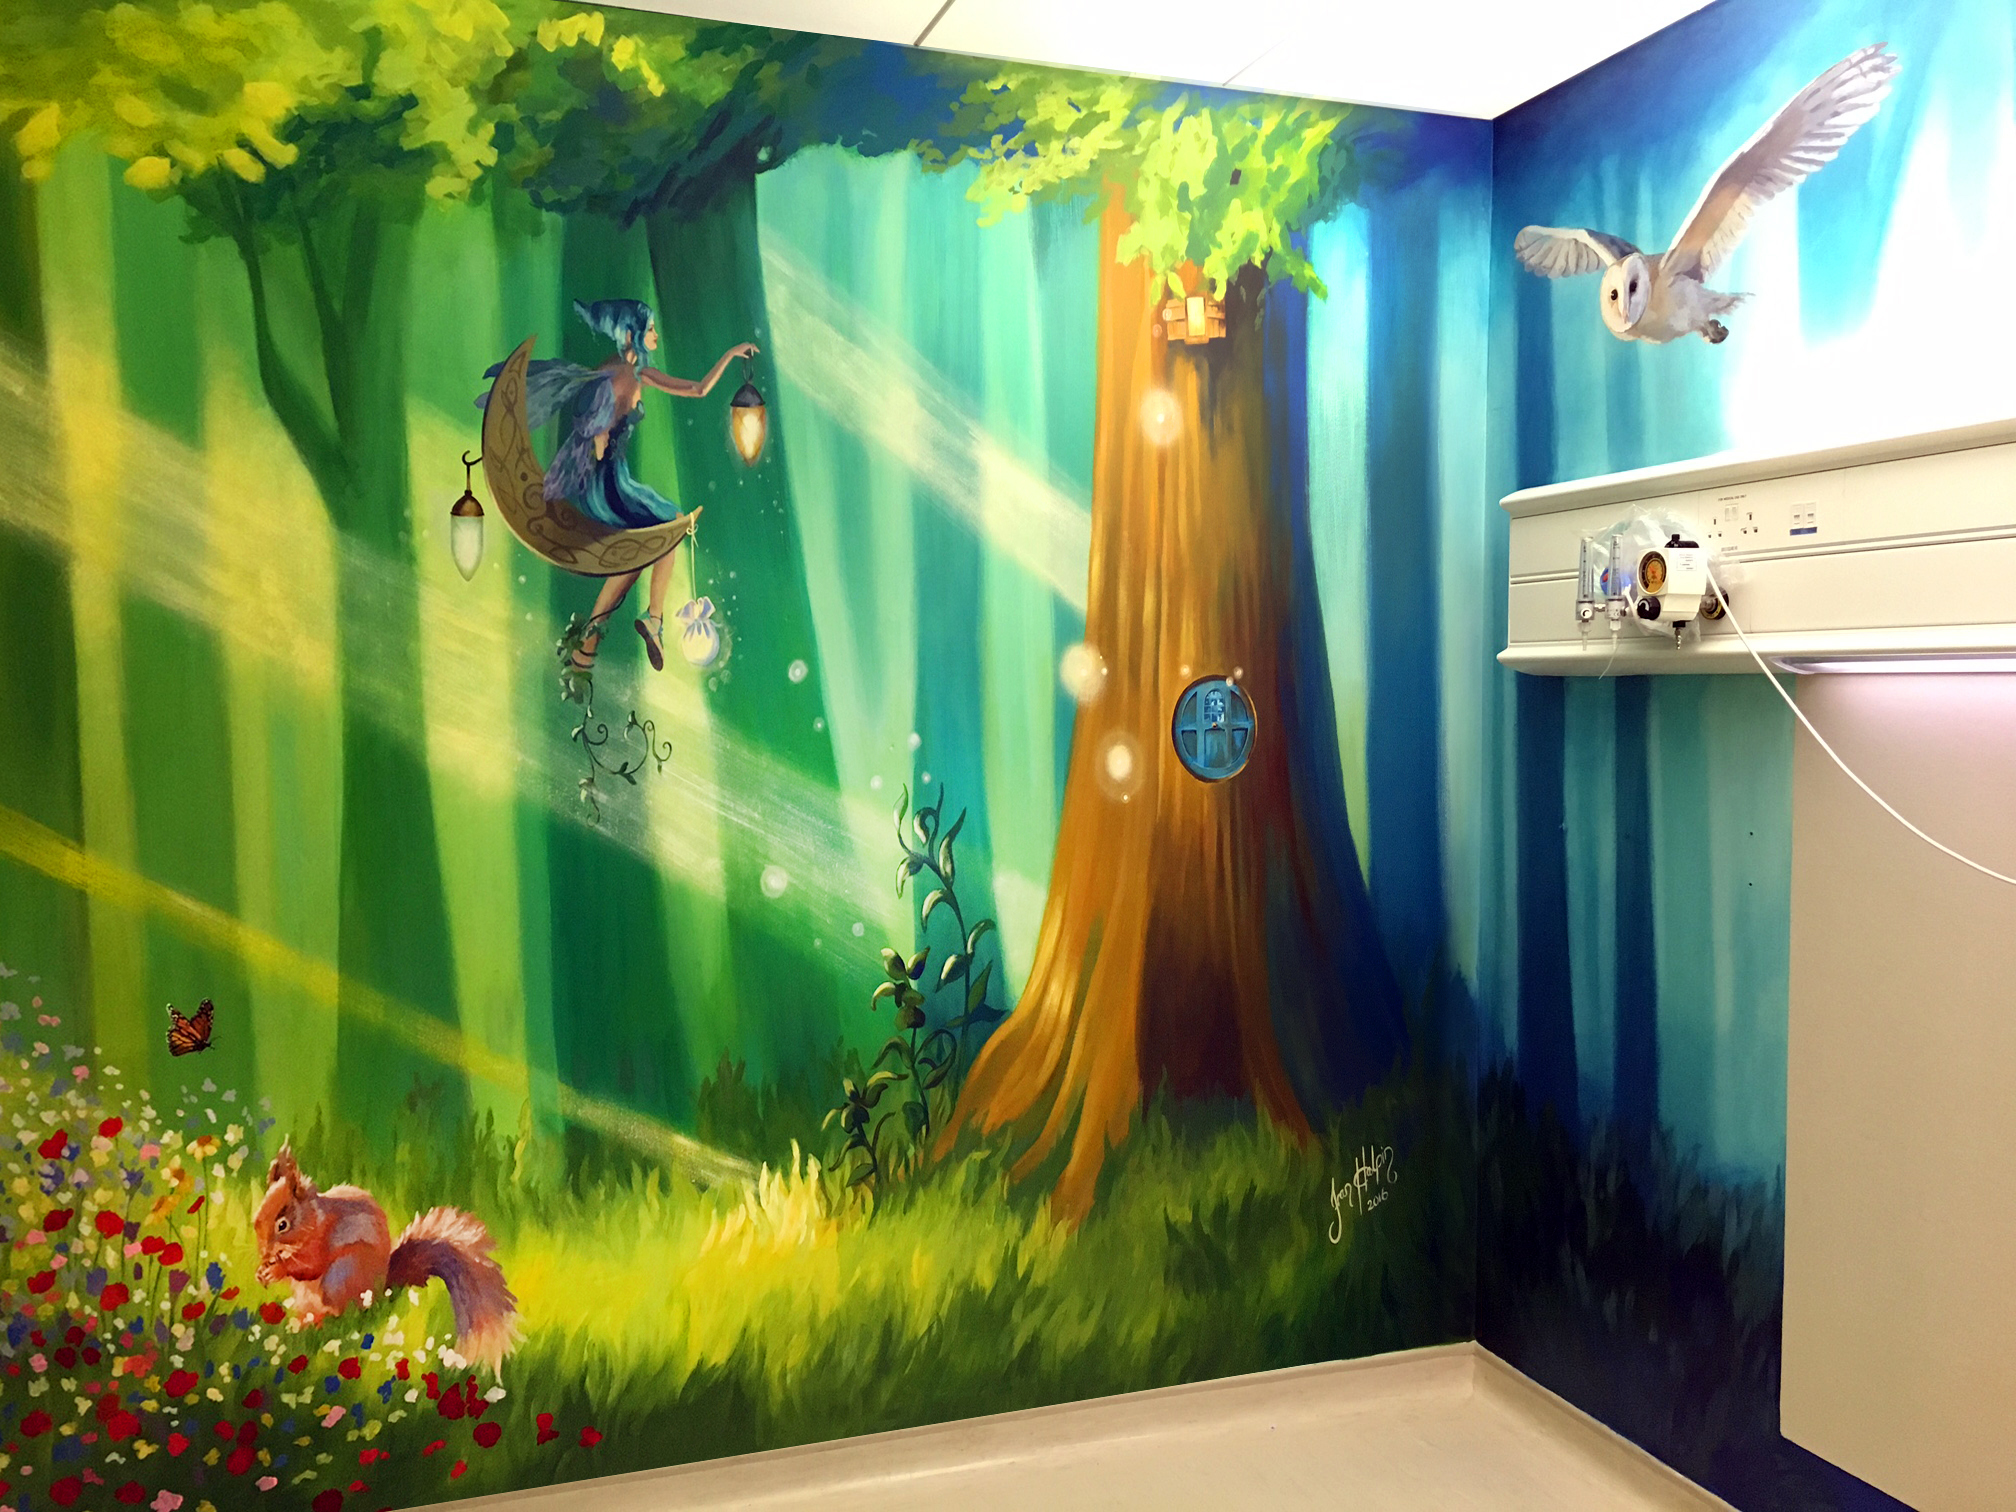 Childrens hospital fairy mural.jpg